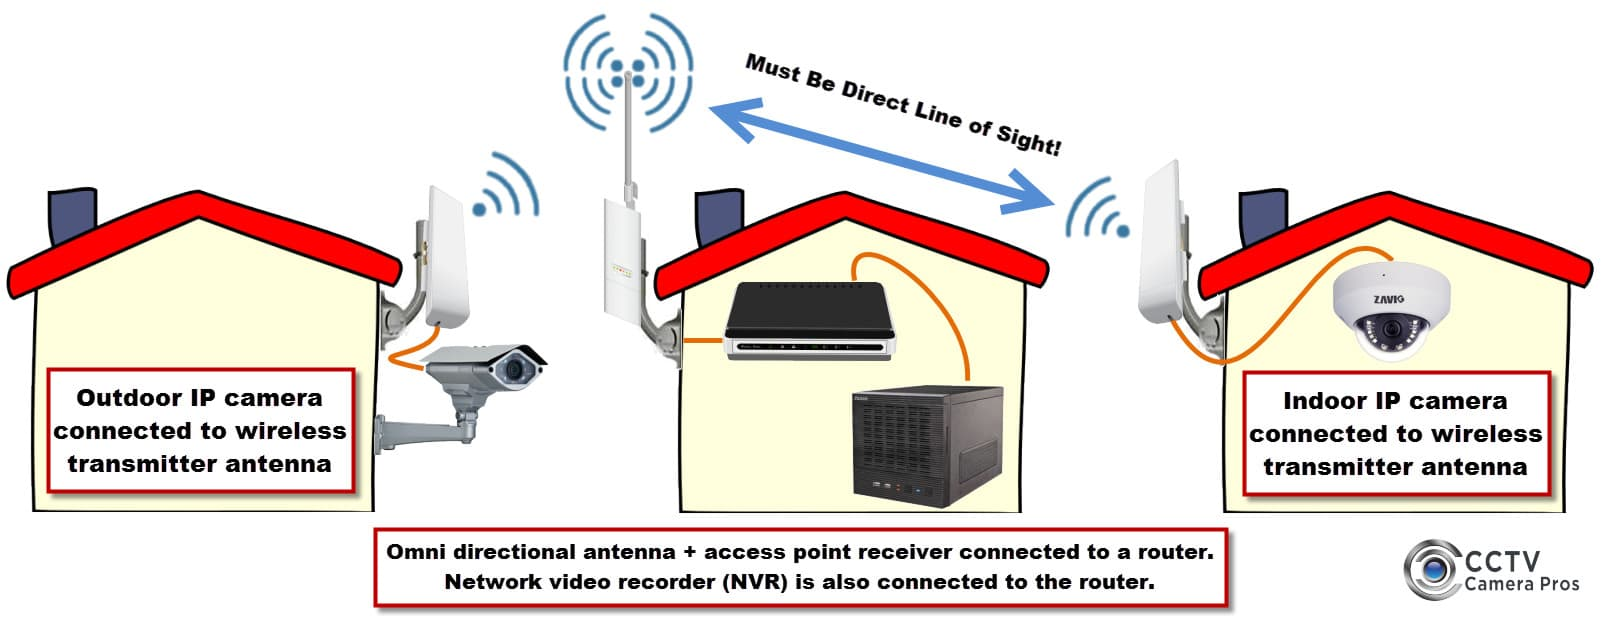 Wireless Security Camera System For Network Ip Cameras And The Antenna Transmitter Two Points Are In One Line